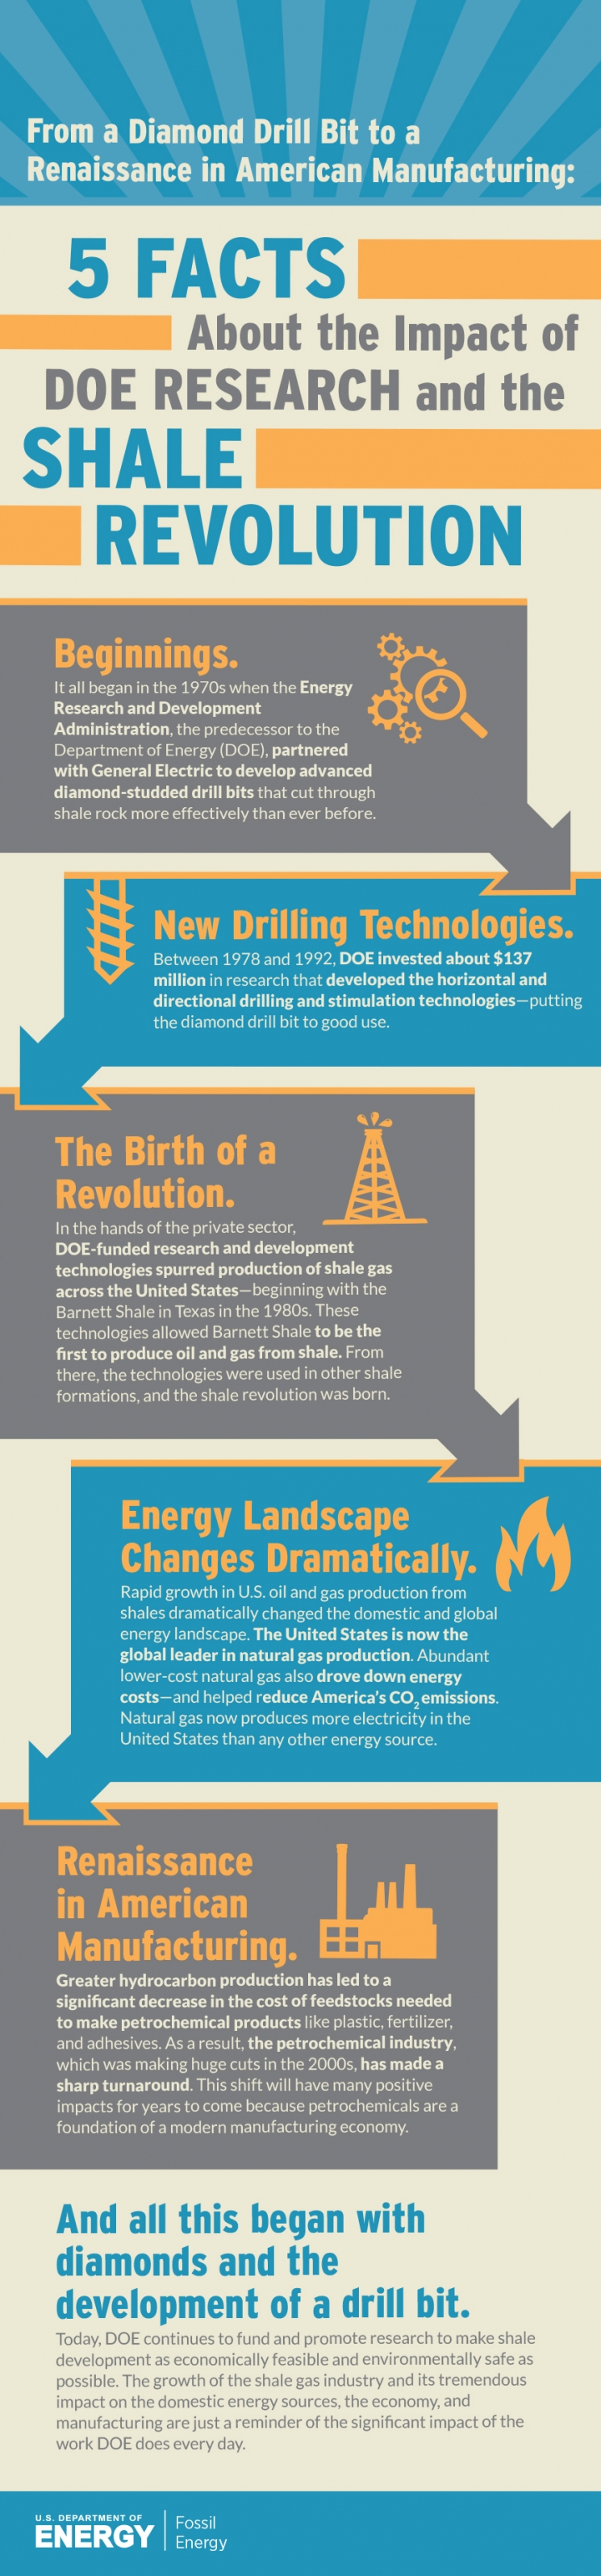 INFOGRAPHIC: 5 Facts About the Impact of DOE Research and the Shale Revolution